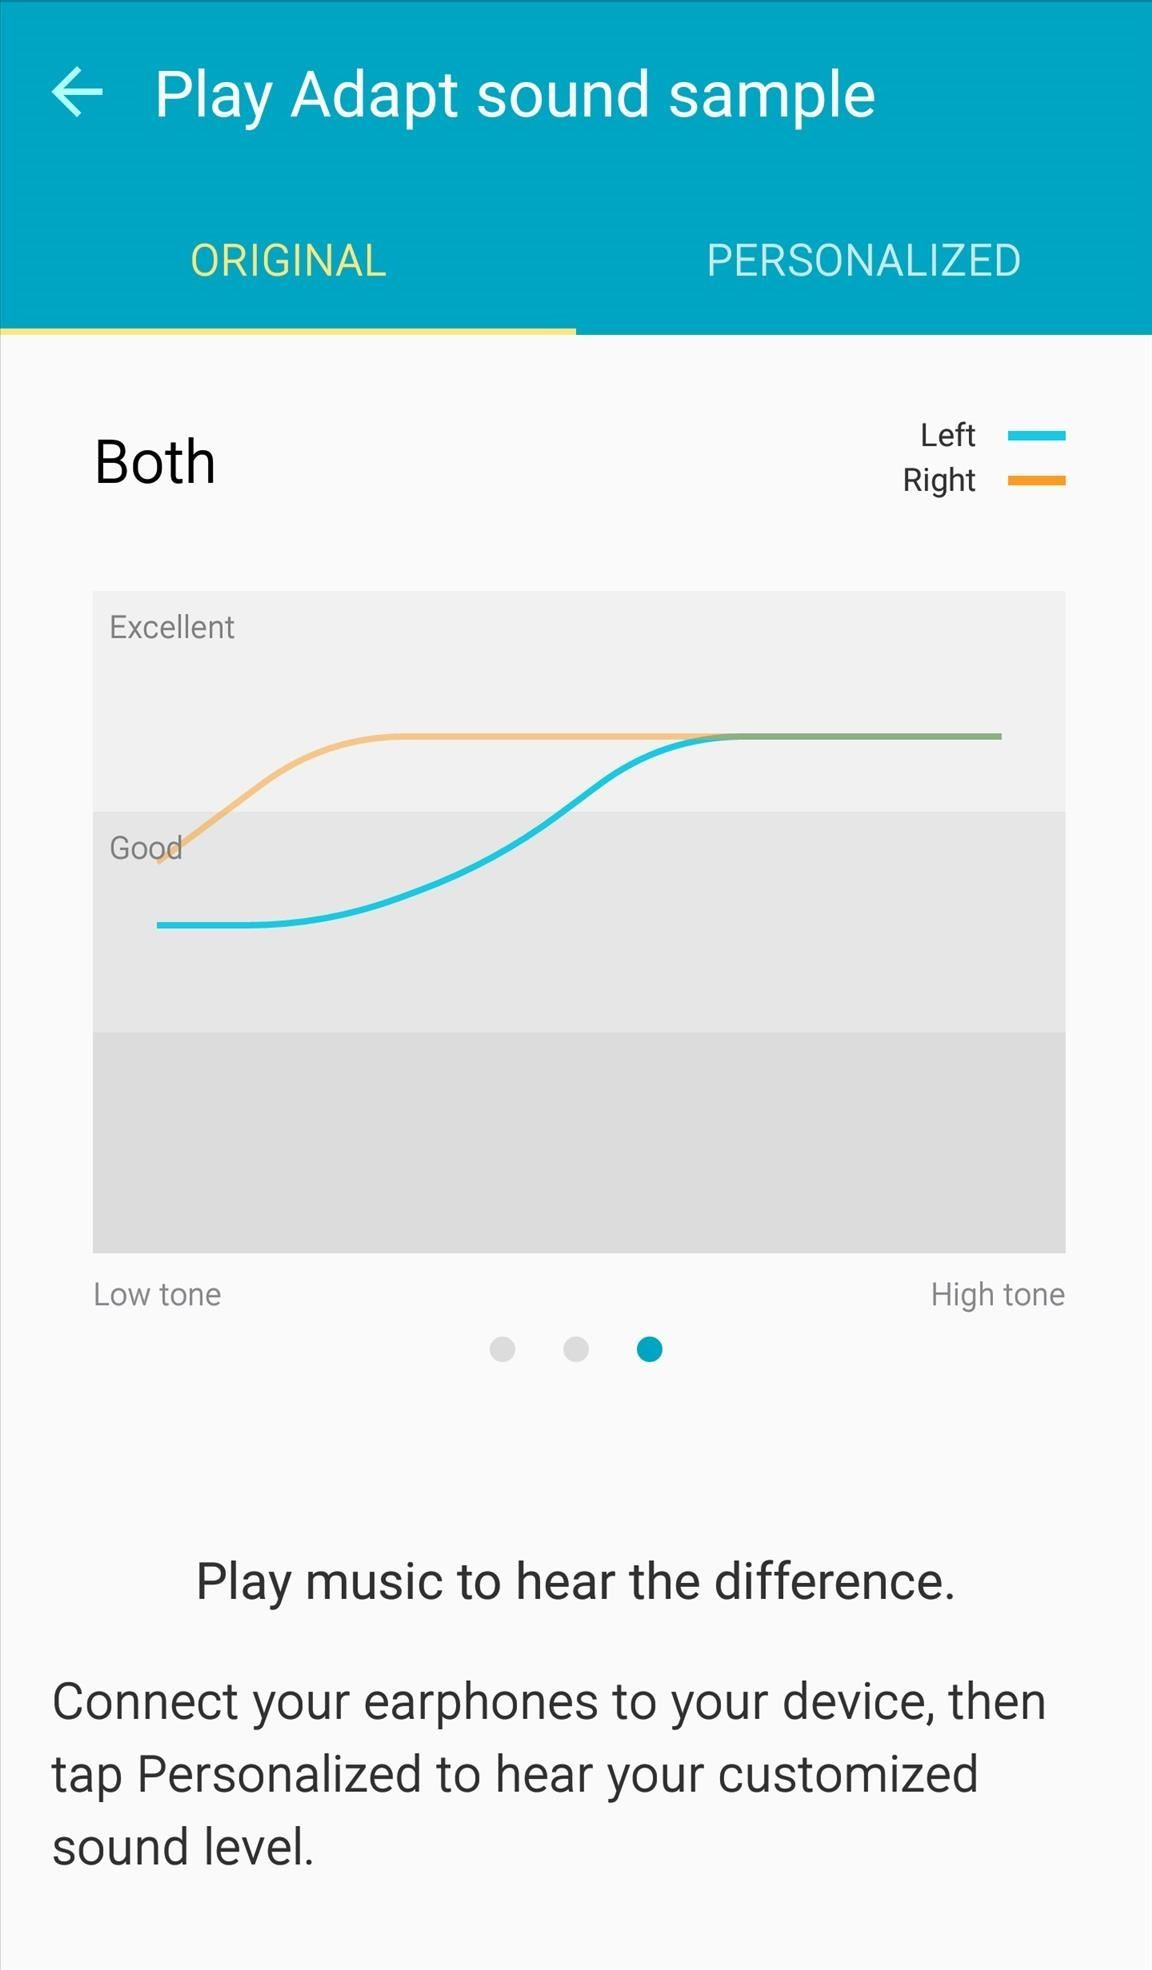 How to Personalize Sound Quality for Headphones on Your Galaxy S6